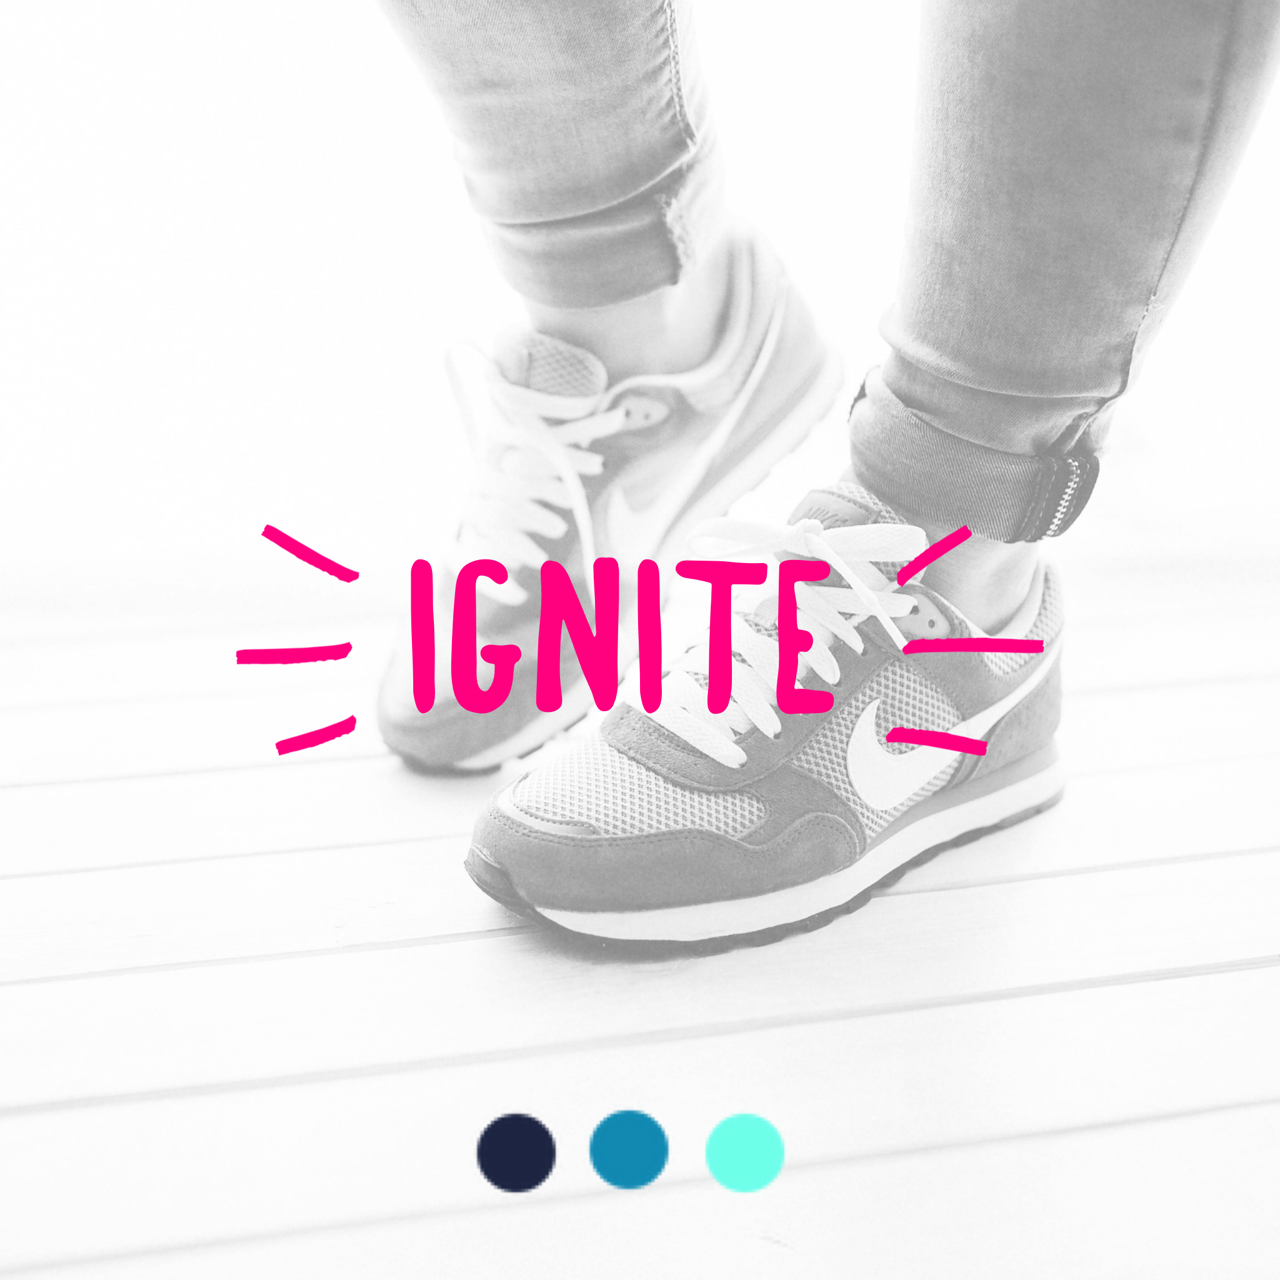 """APRIL   In April, we encourage you to  IGNITE  and take the first step towards your goals. It's time to find your motivation and discover your """"why."""""""